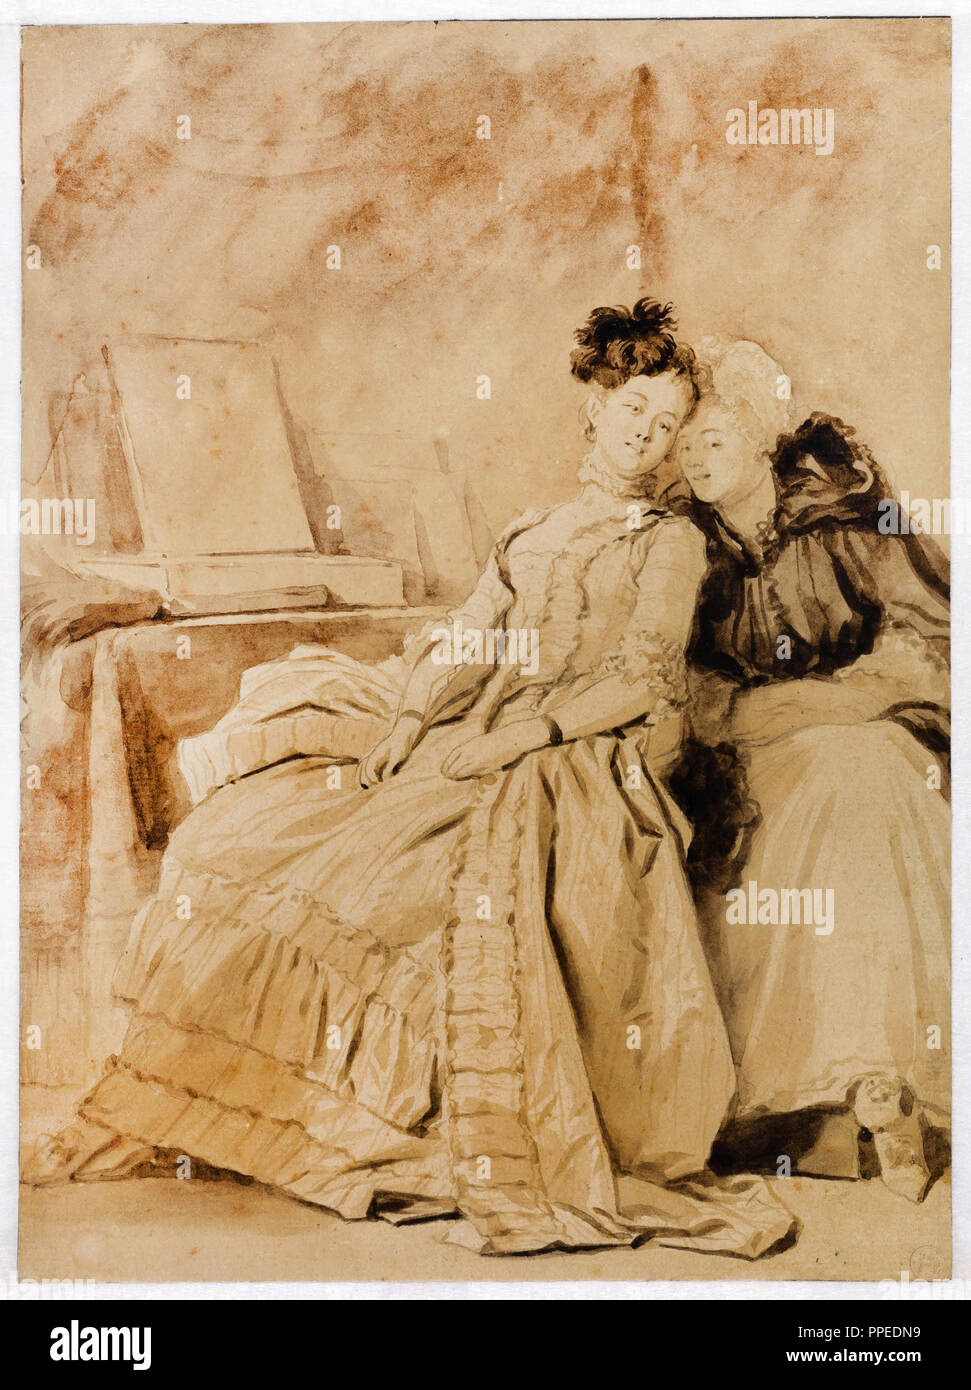 Jean-Honore Fragonard, The Intimate Conversation. Circa 1778-1780. Pencil, pen and brush, brown and black ink, on paper. Museum Boijmans Van Beuningen - Stock Image